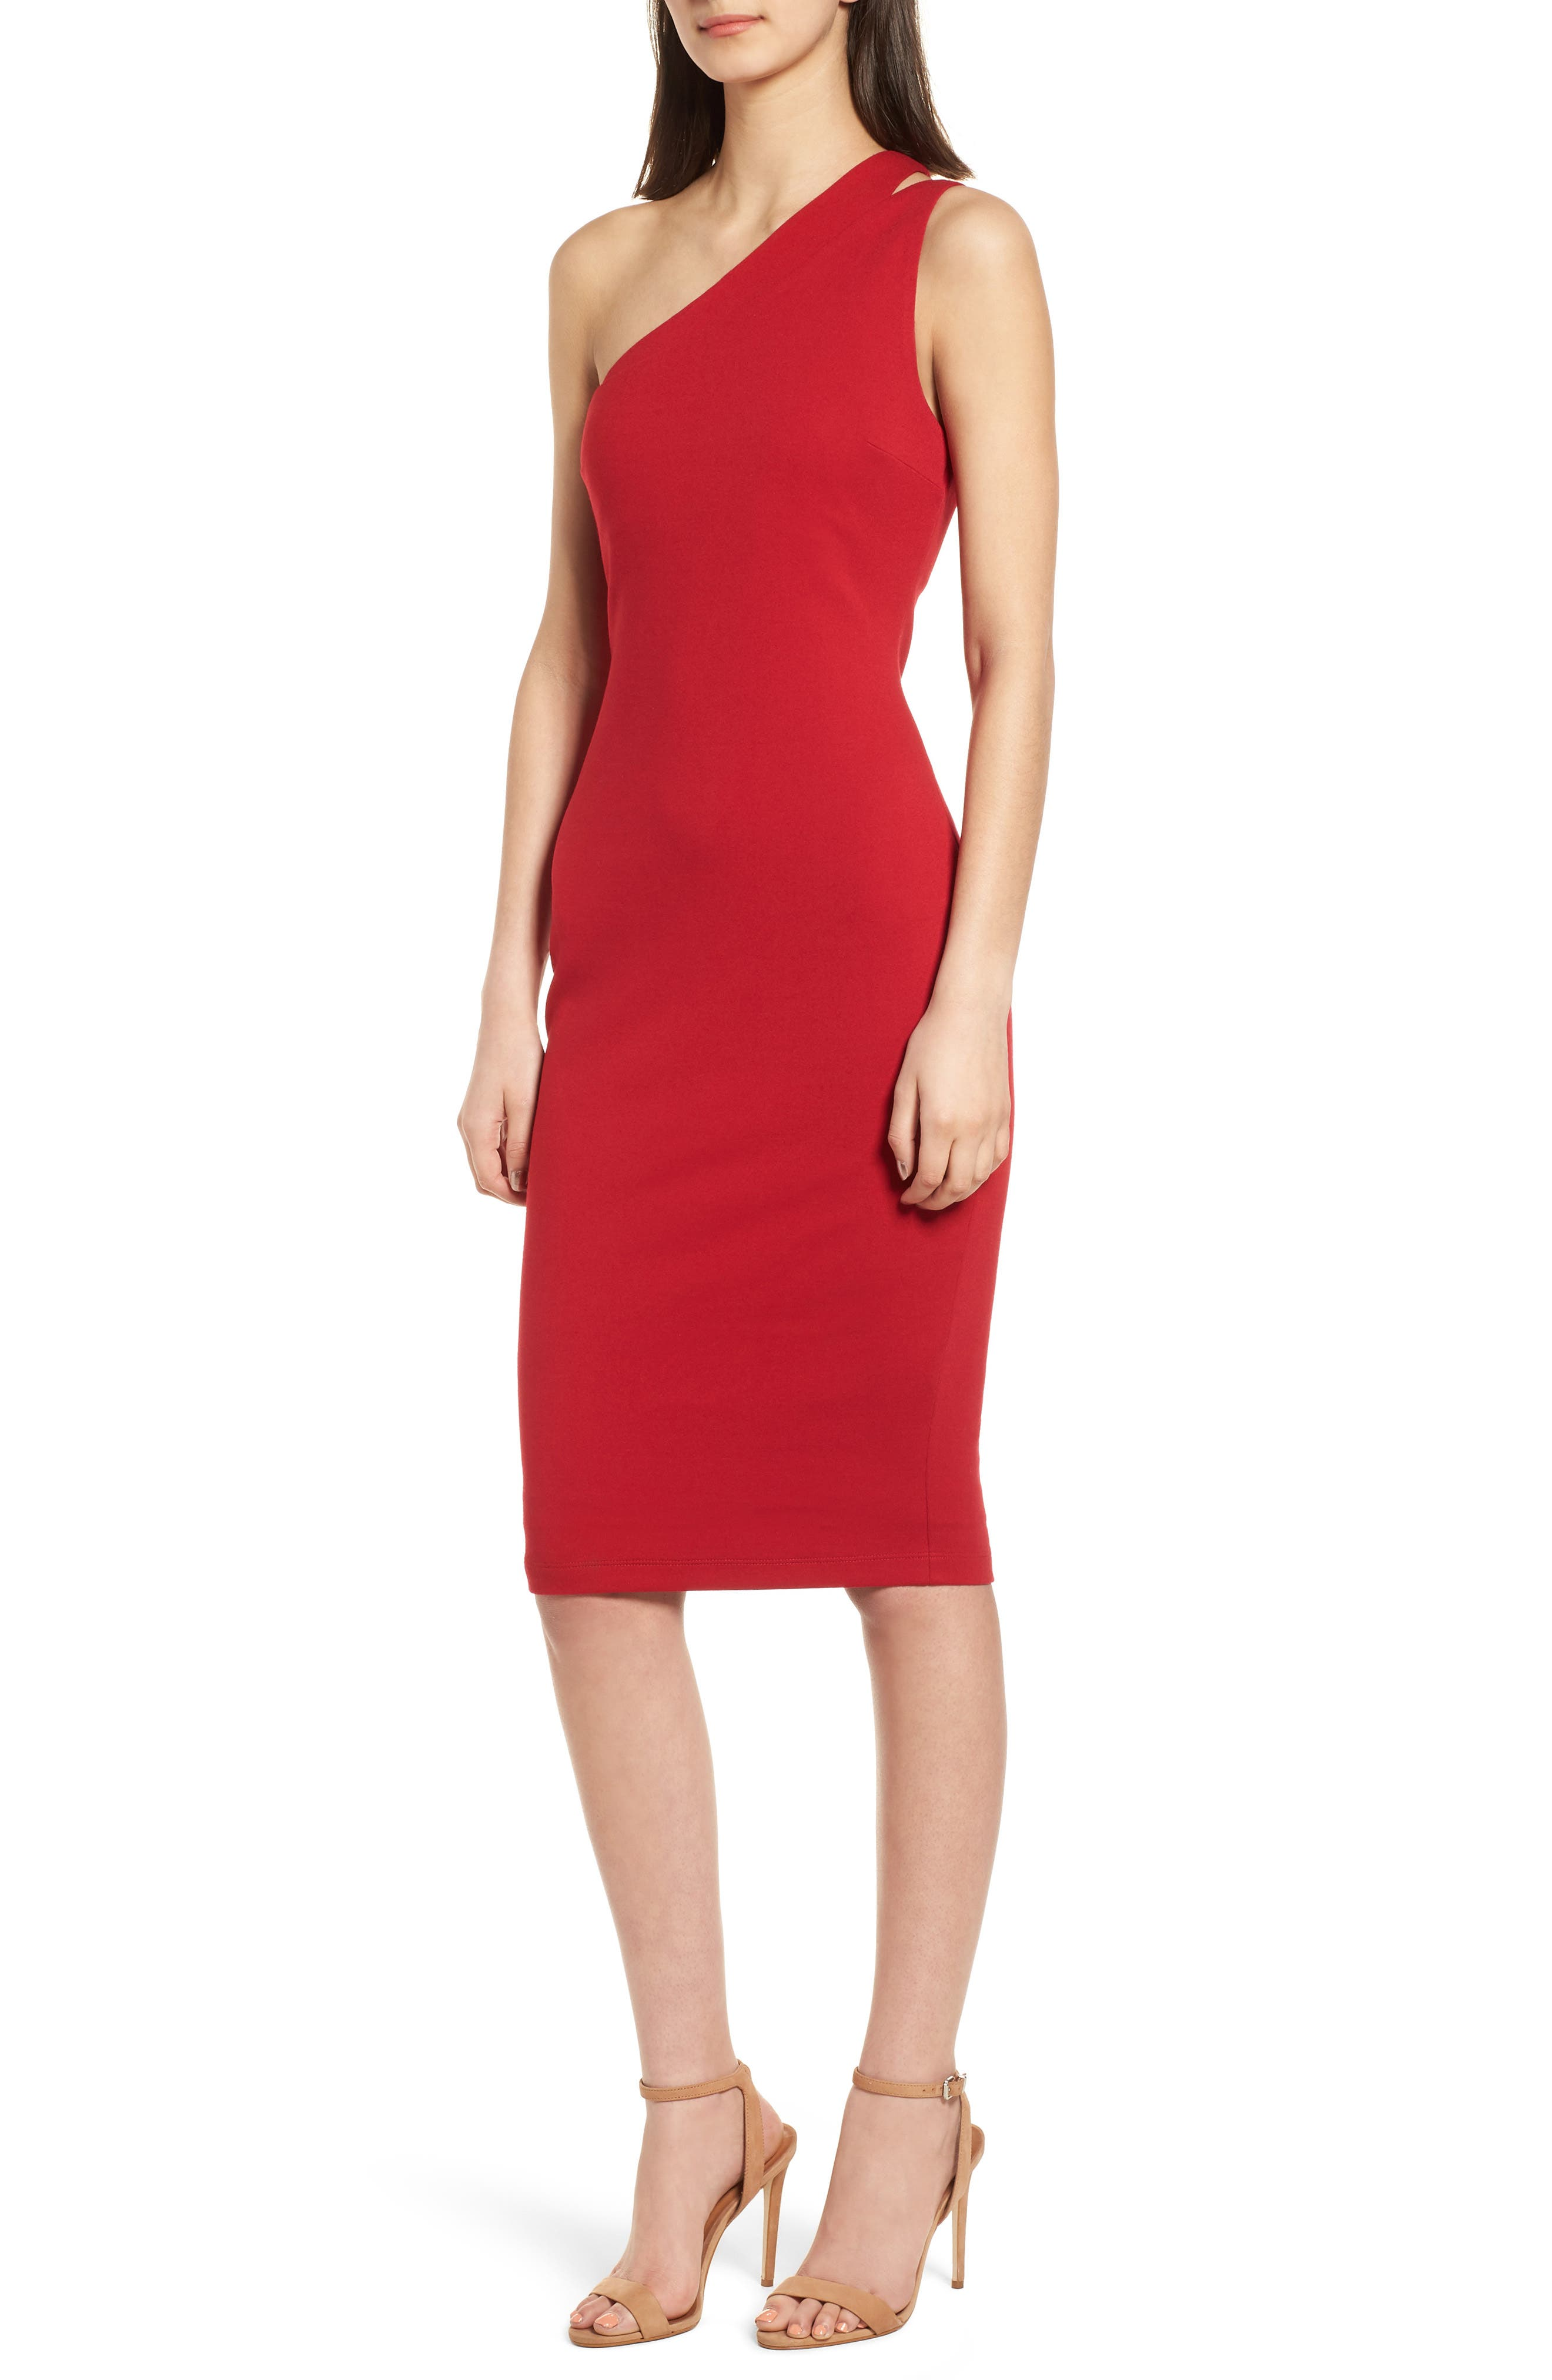 Sidewinder One-Shoulder Body-Con Dress,                             Main thumbnail 1, color,                             700